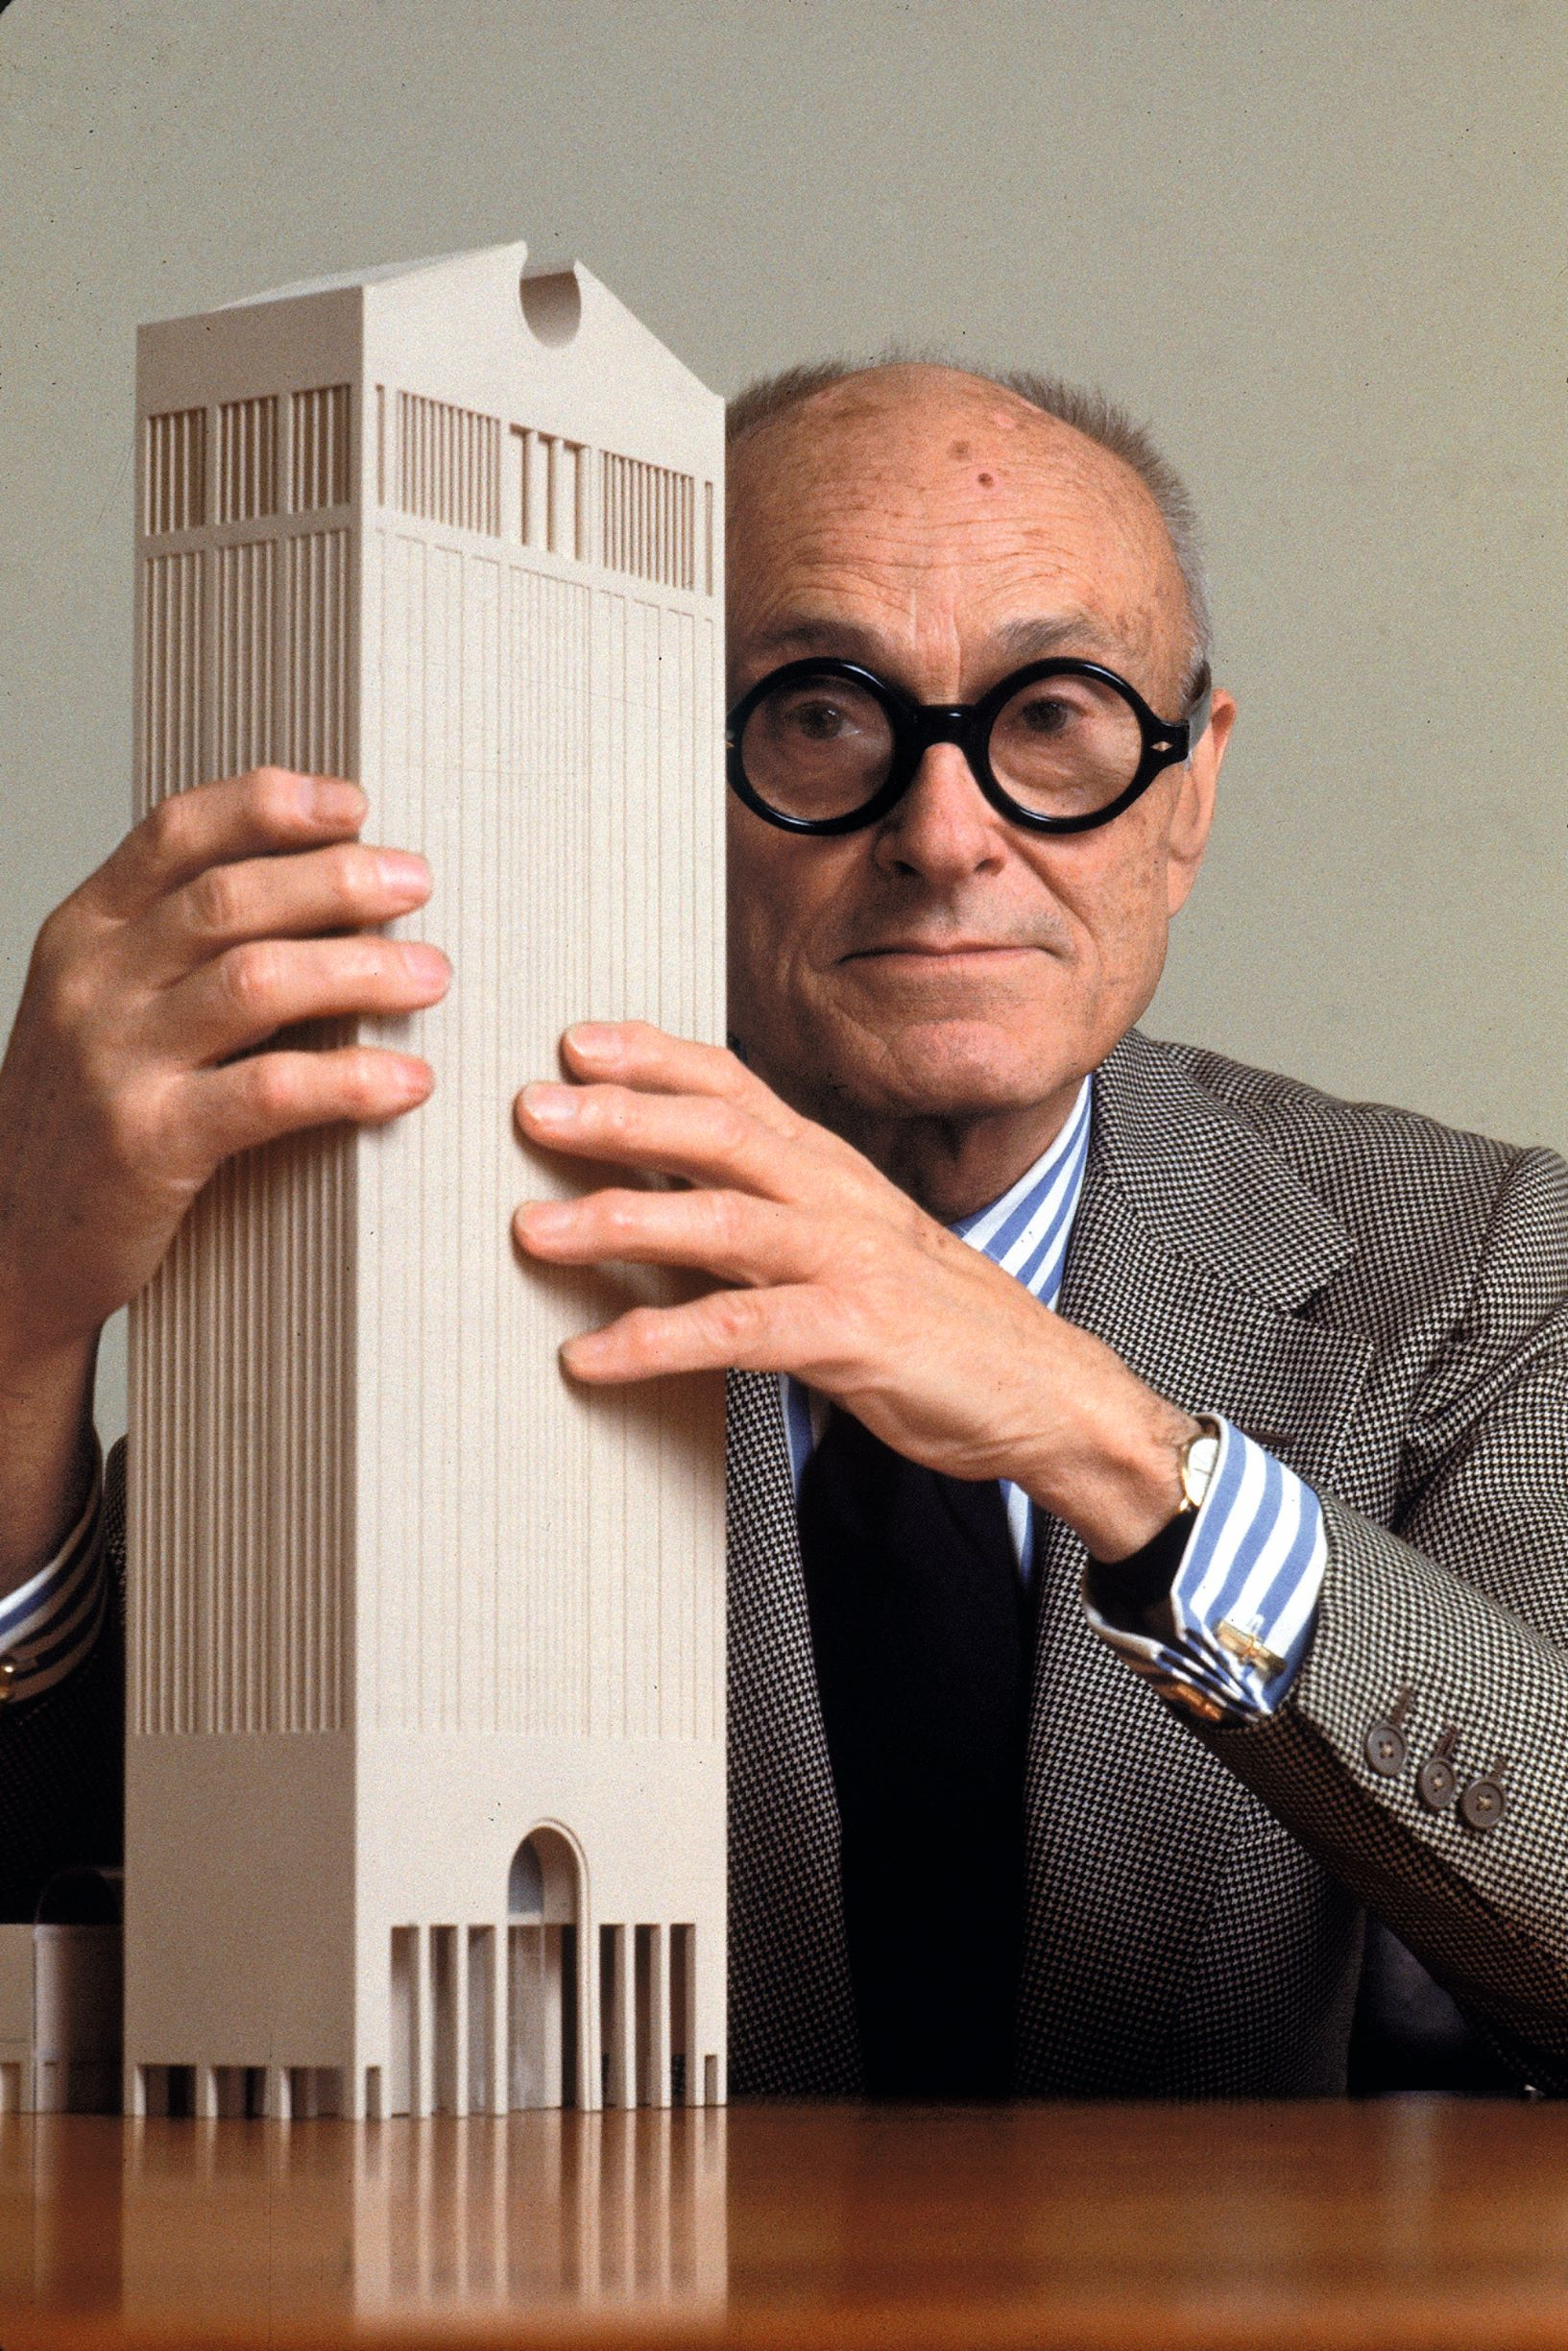 Philip Johnson posing with a model of his newly designed AT&T Building, May 1978